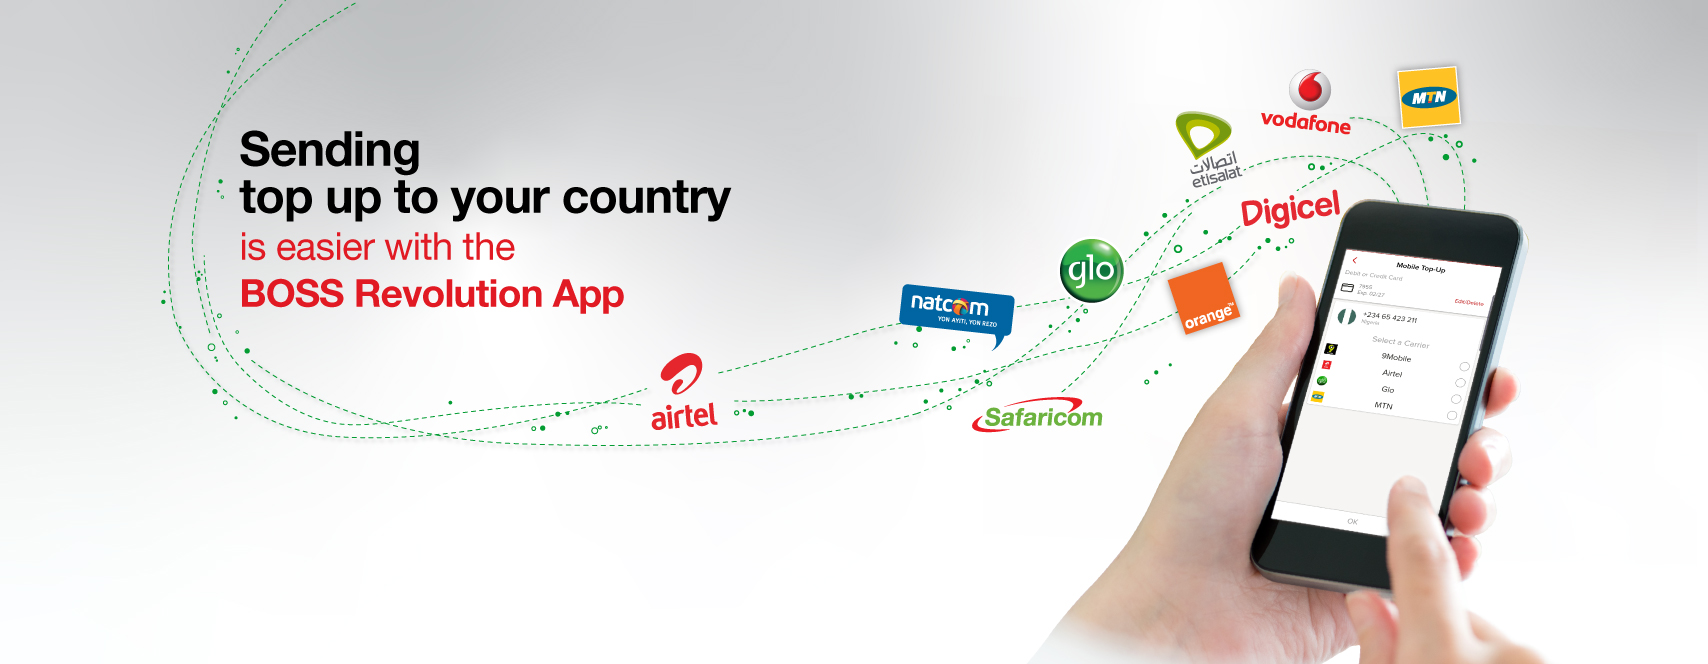 Sending top up to your country is easier with the BOSS Revolution App